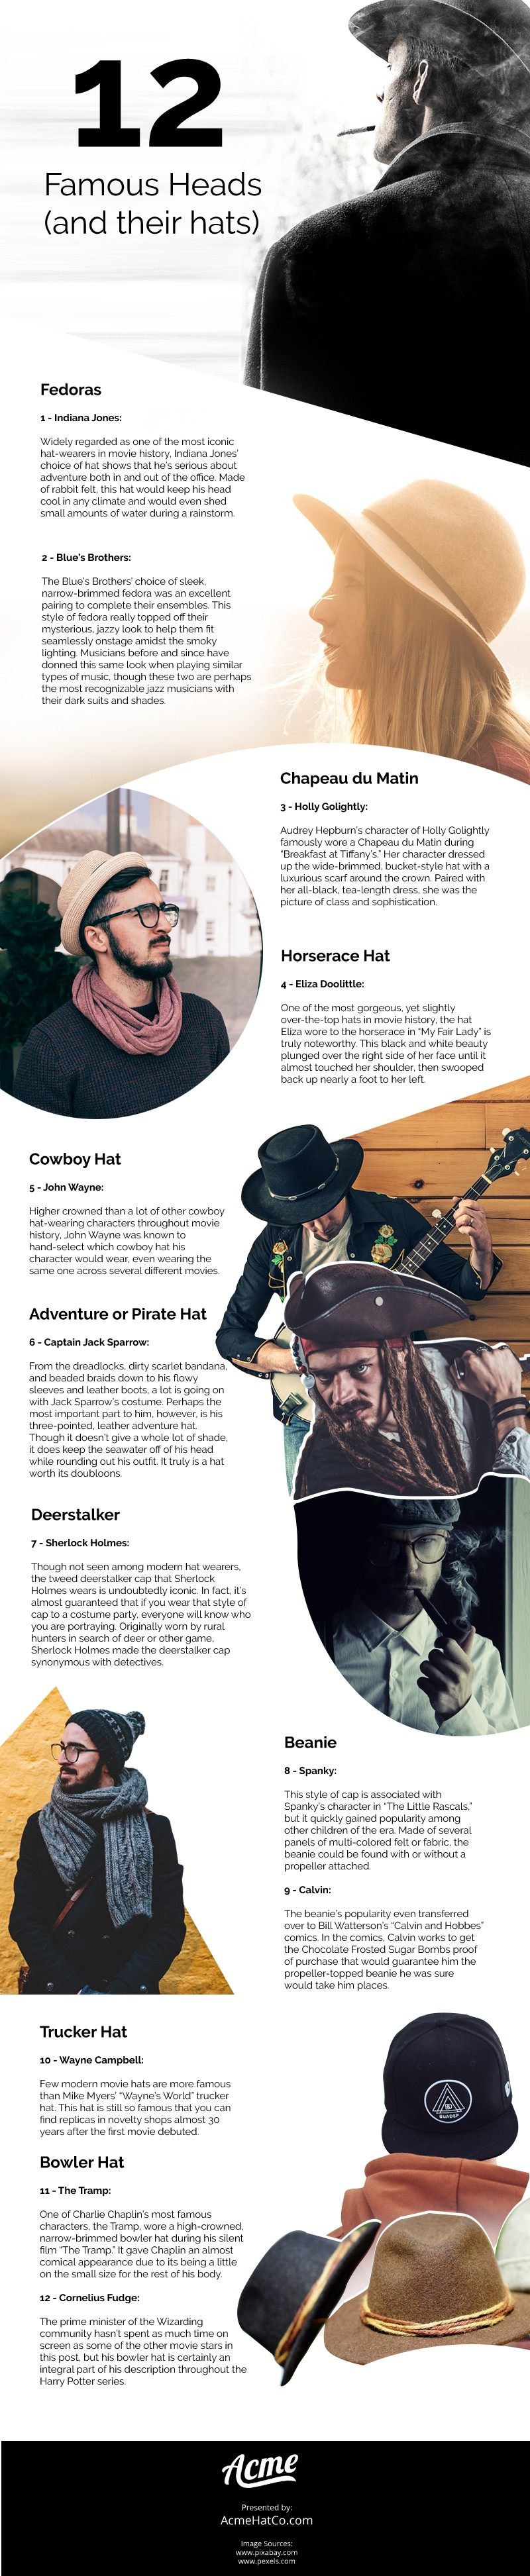 12 Famous Heads (and their Hats) Infographic